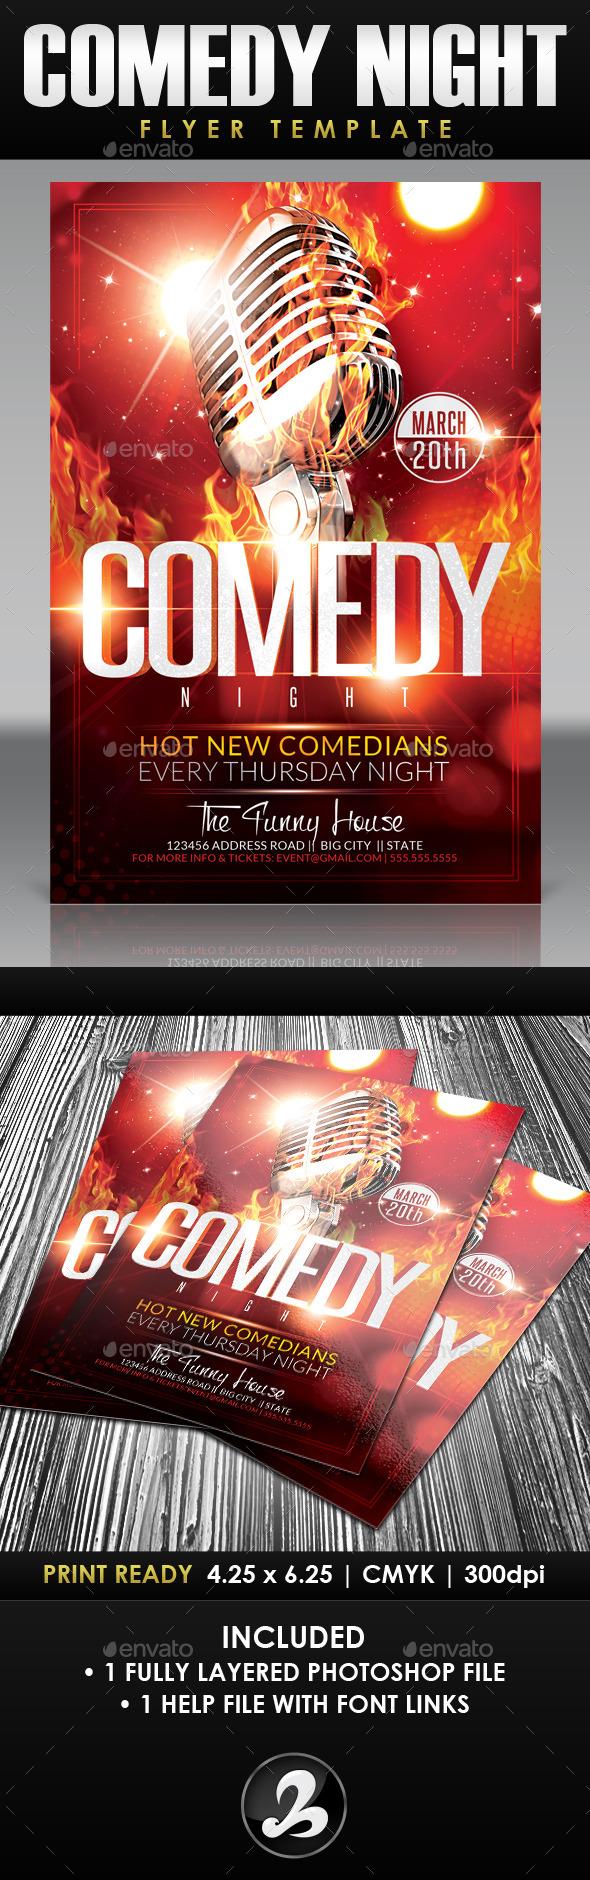 free comedy night flyer template tinkytyler org stock